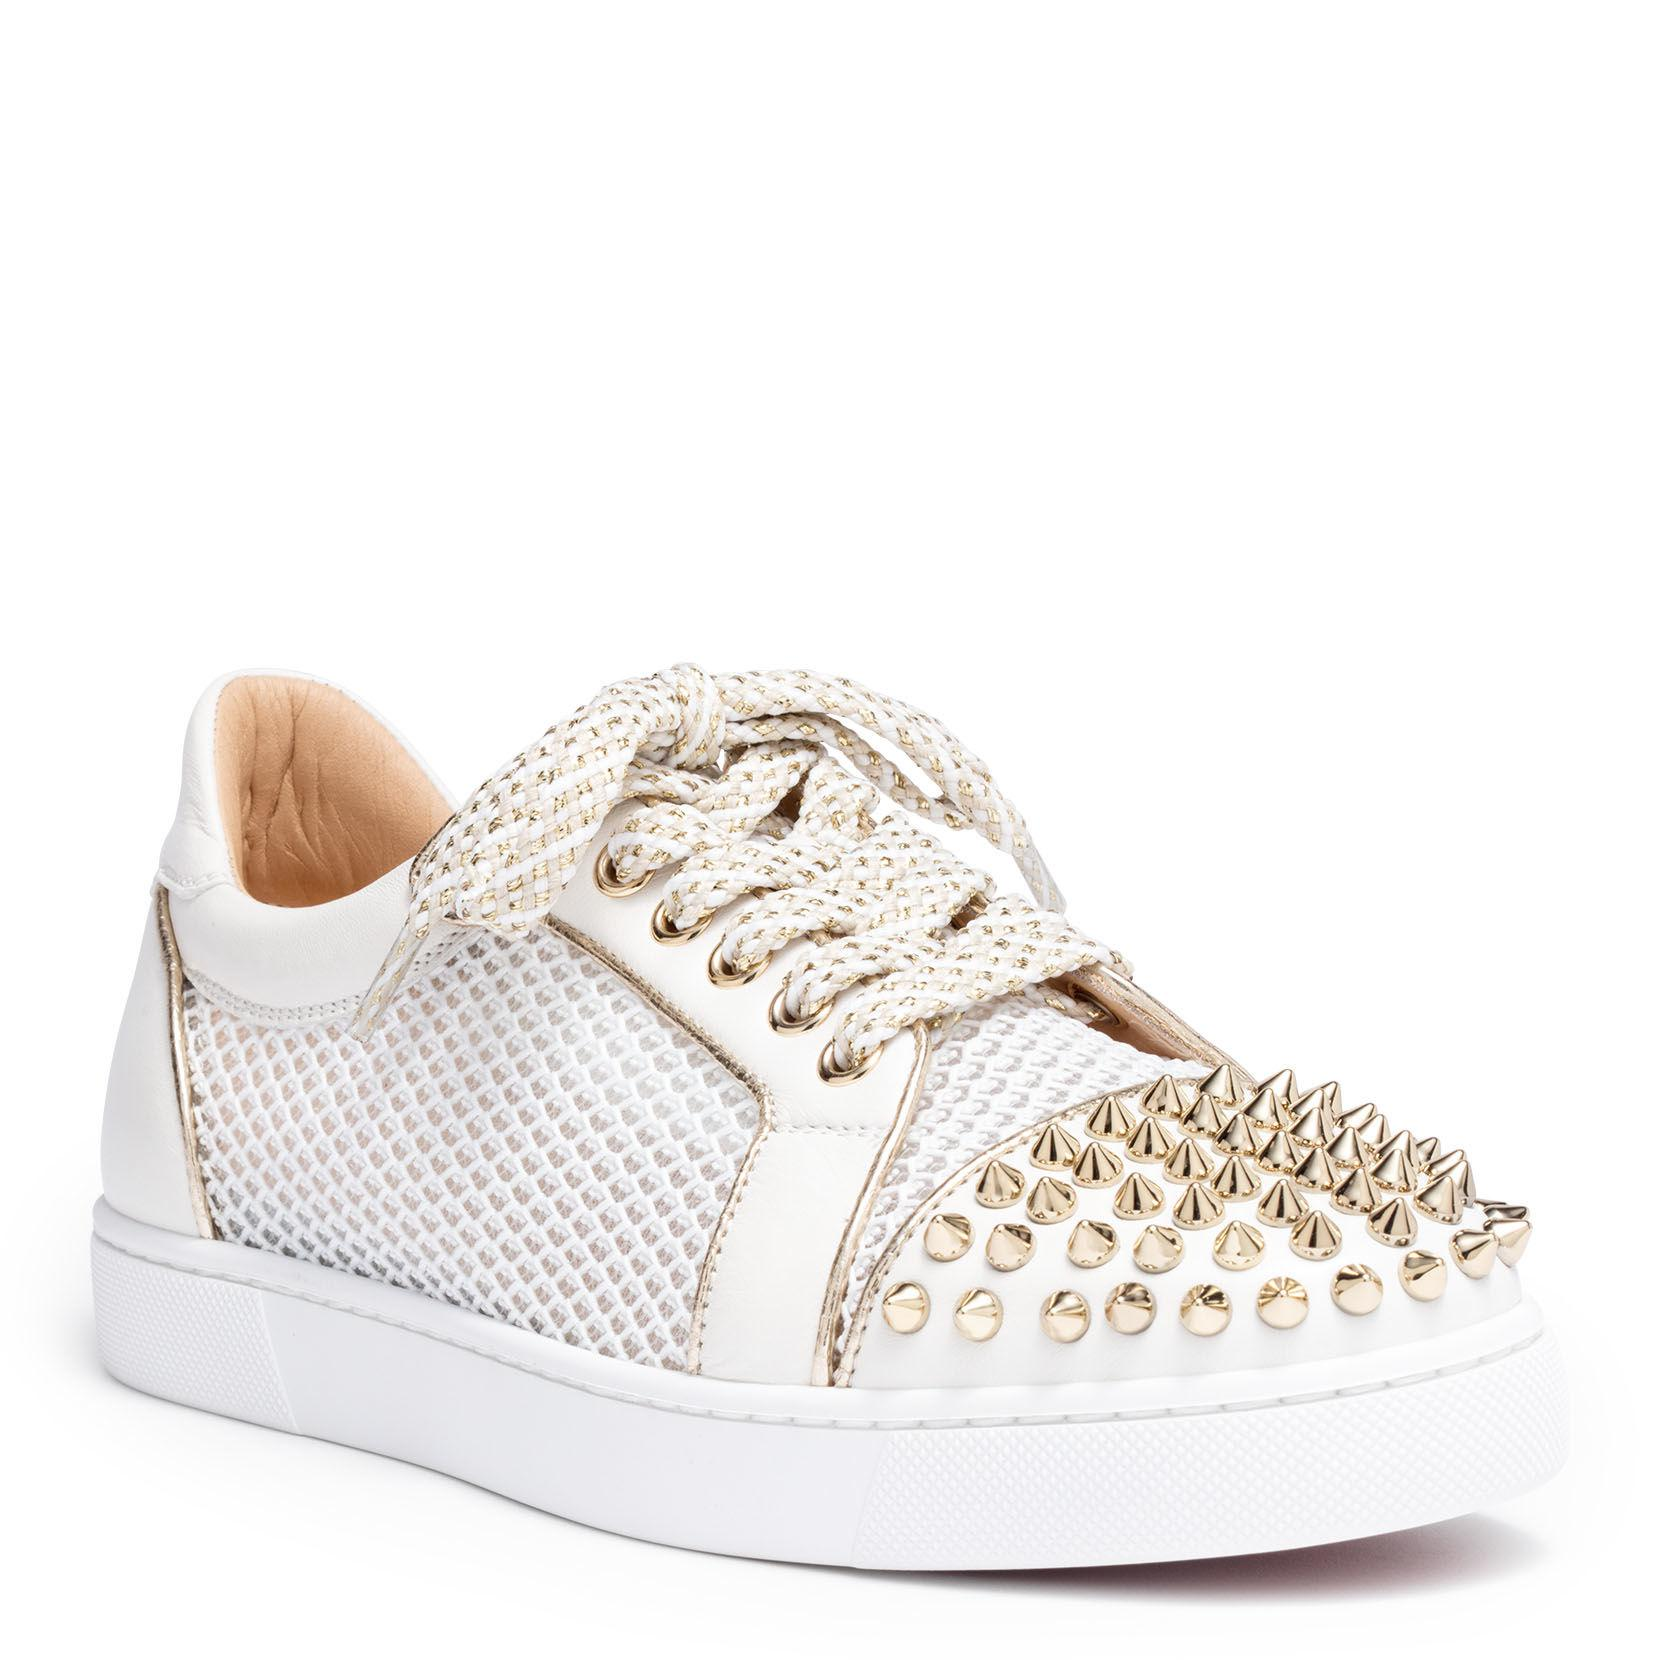 f1d611f4de8 Christian Louboutin Vieira Light Gold Leather Spike Sneakers in ...